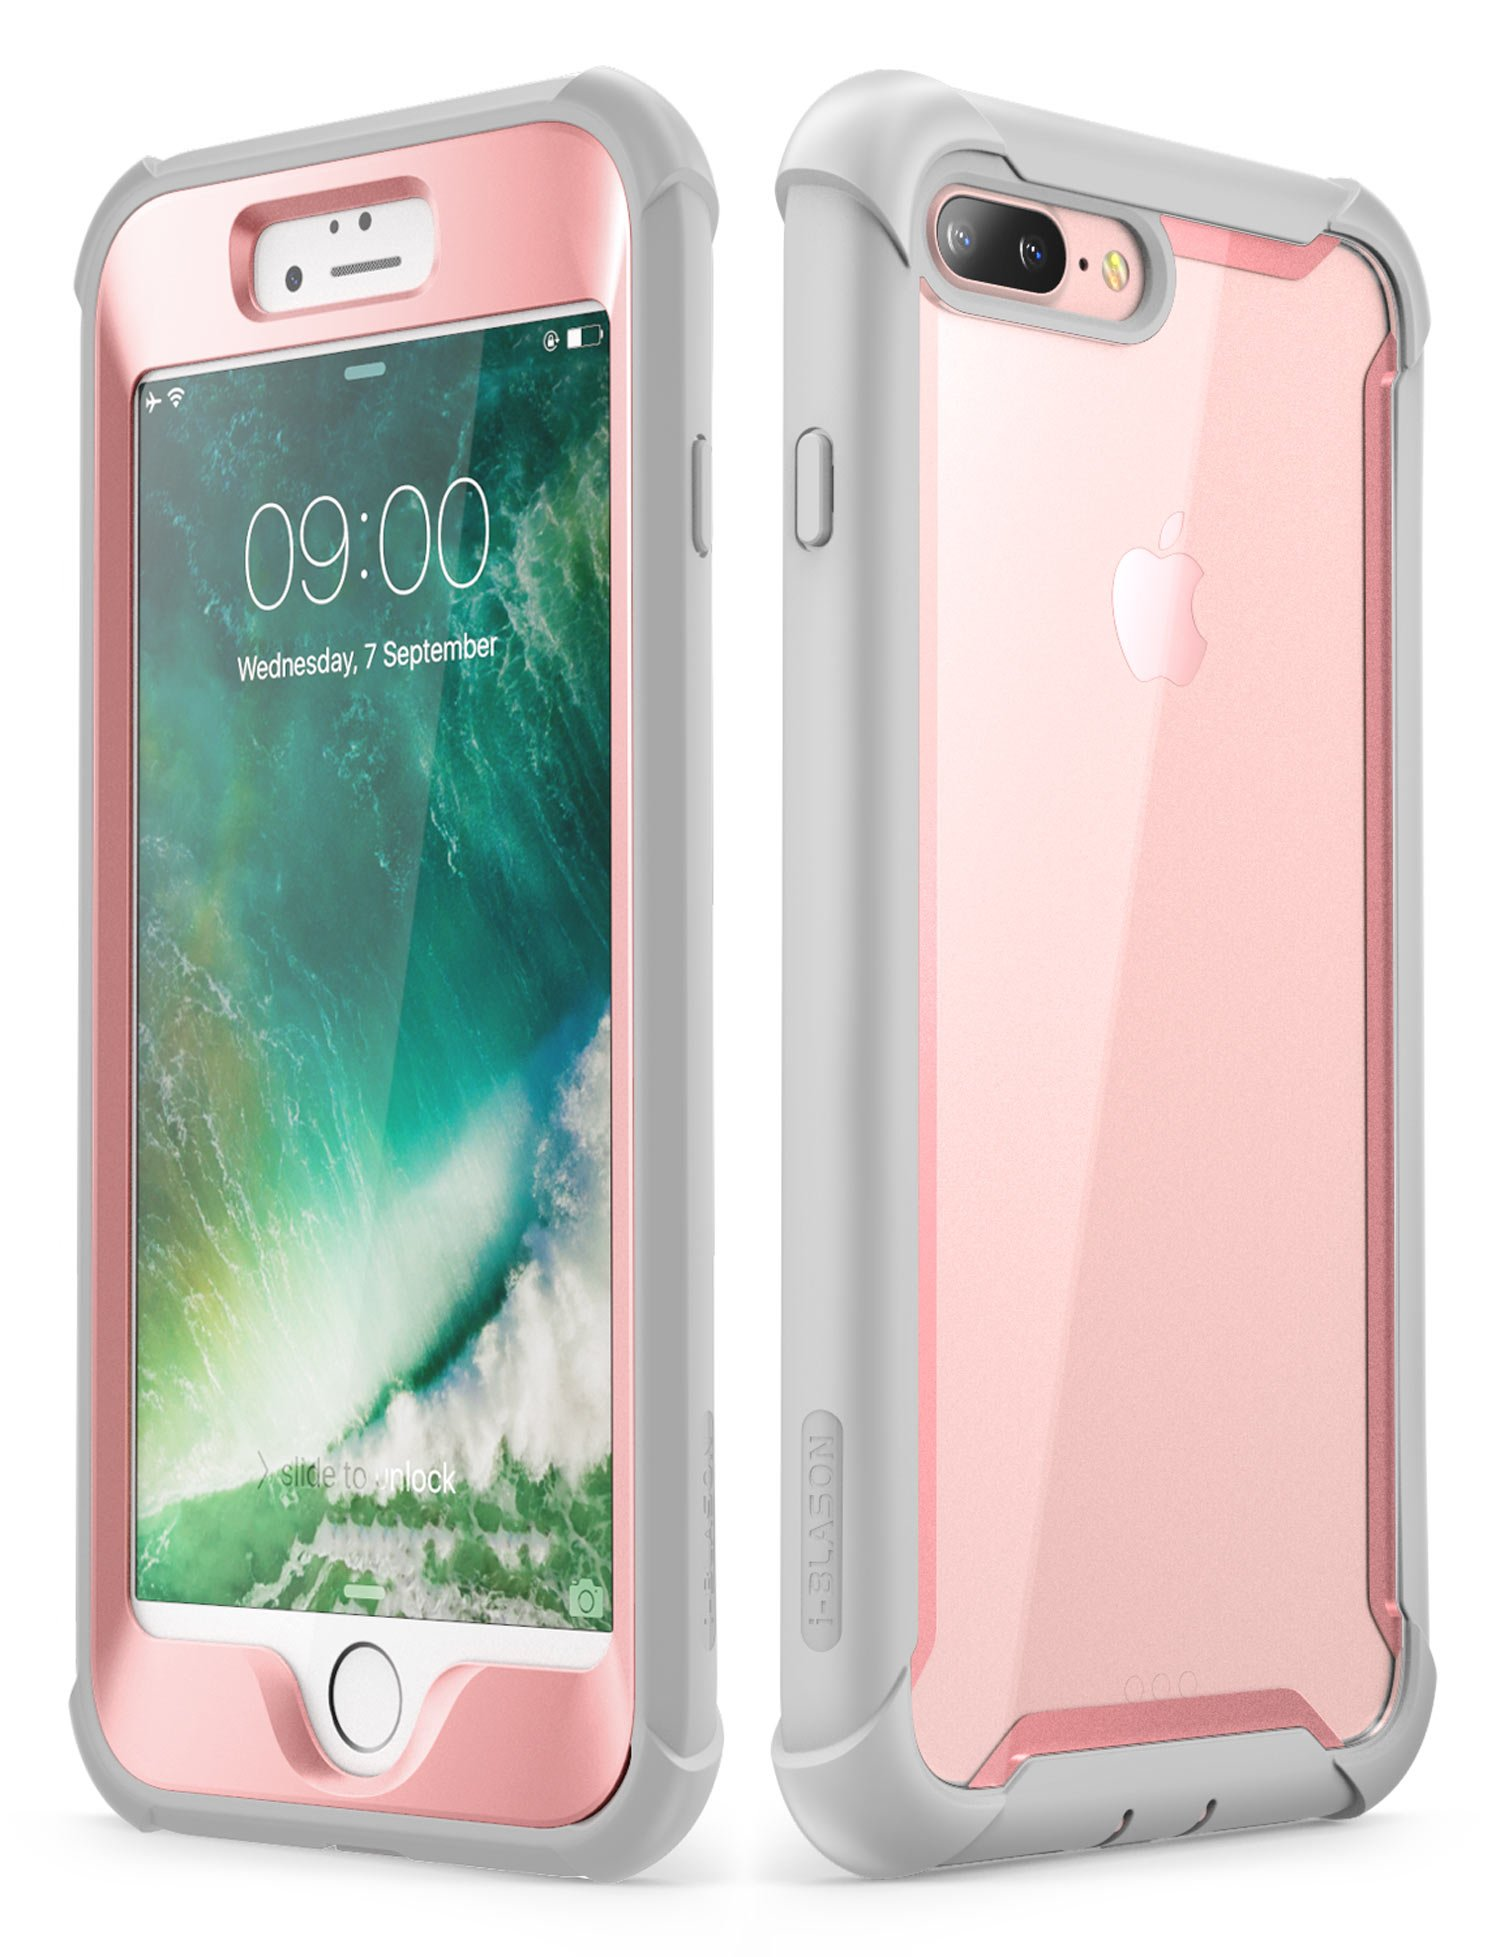 iPhone 8 Plus case, iPhone 7 Plus case, i-Blason [Ares] Full-Body Rugged Clear Bumper Case with Built-in Screen Protector for Apple iPhone 8 Plus/Apple iPhone 7 Plus (Pink)